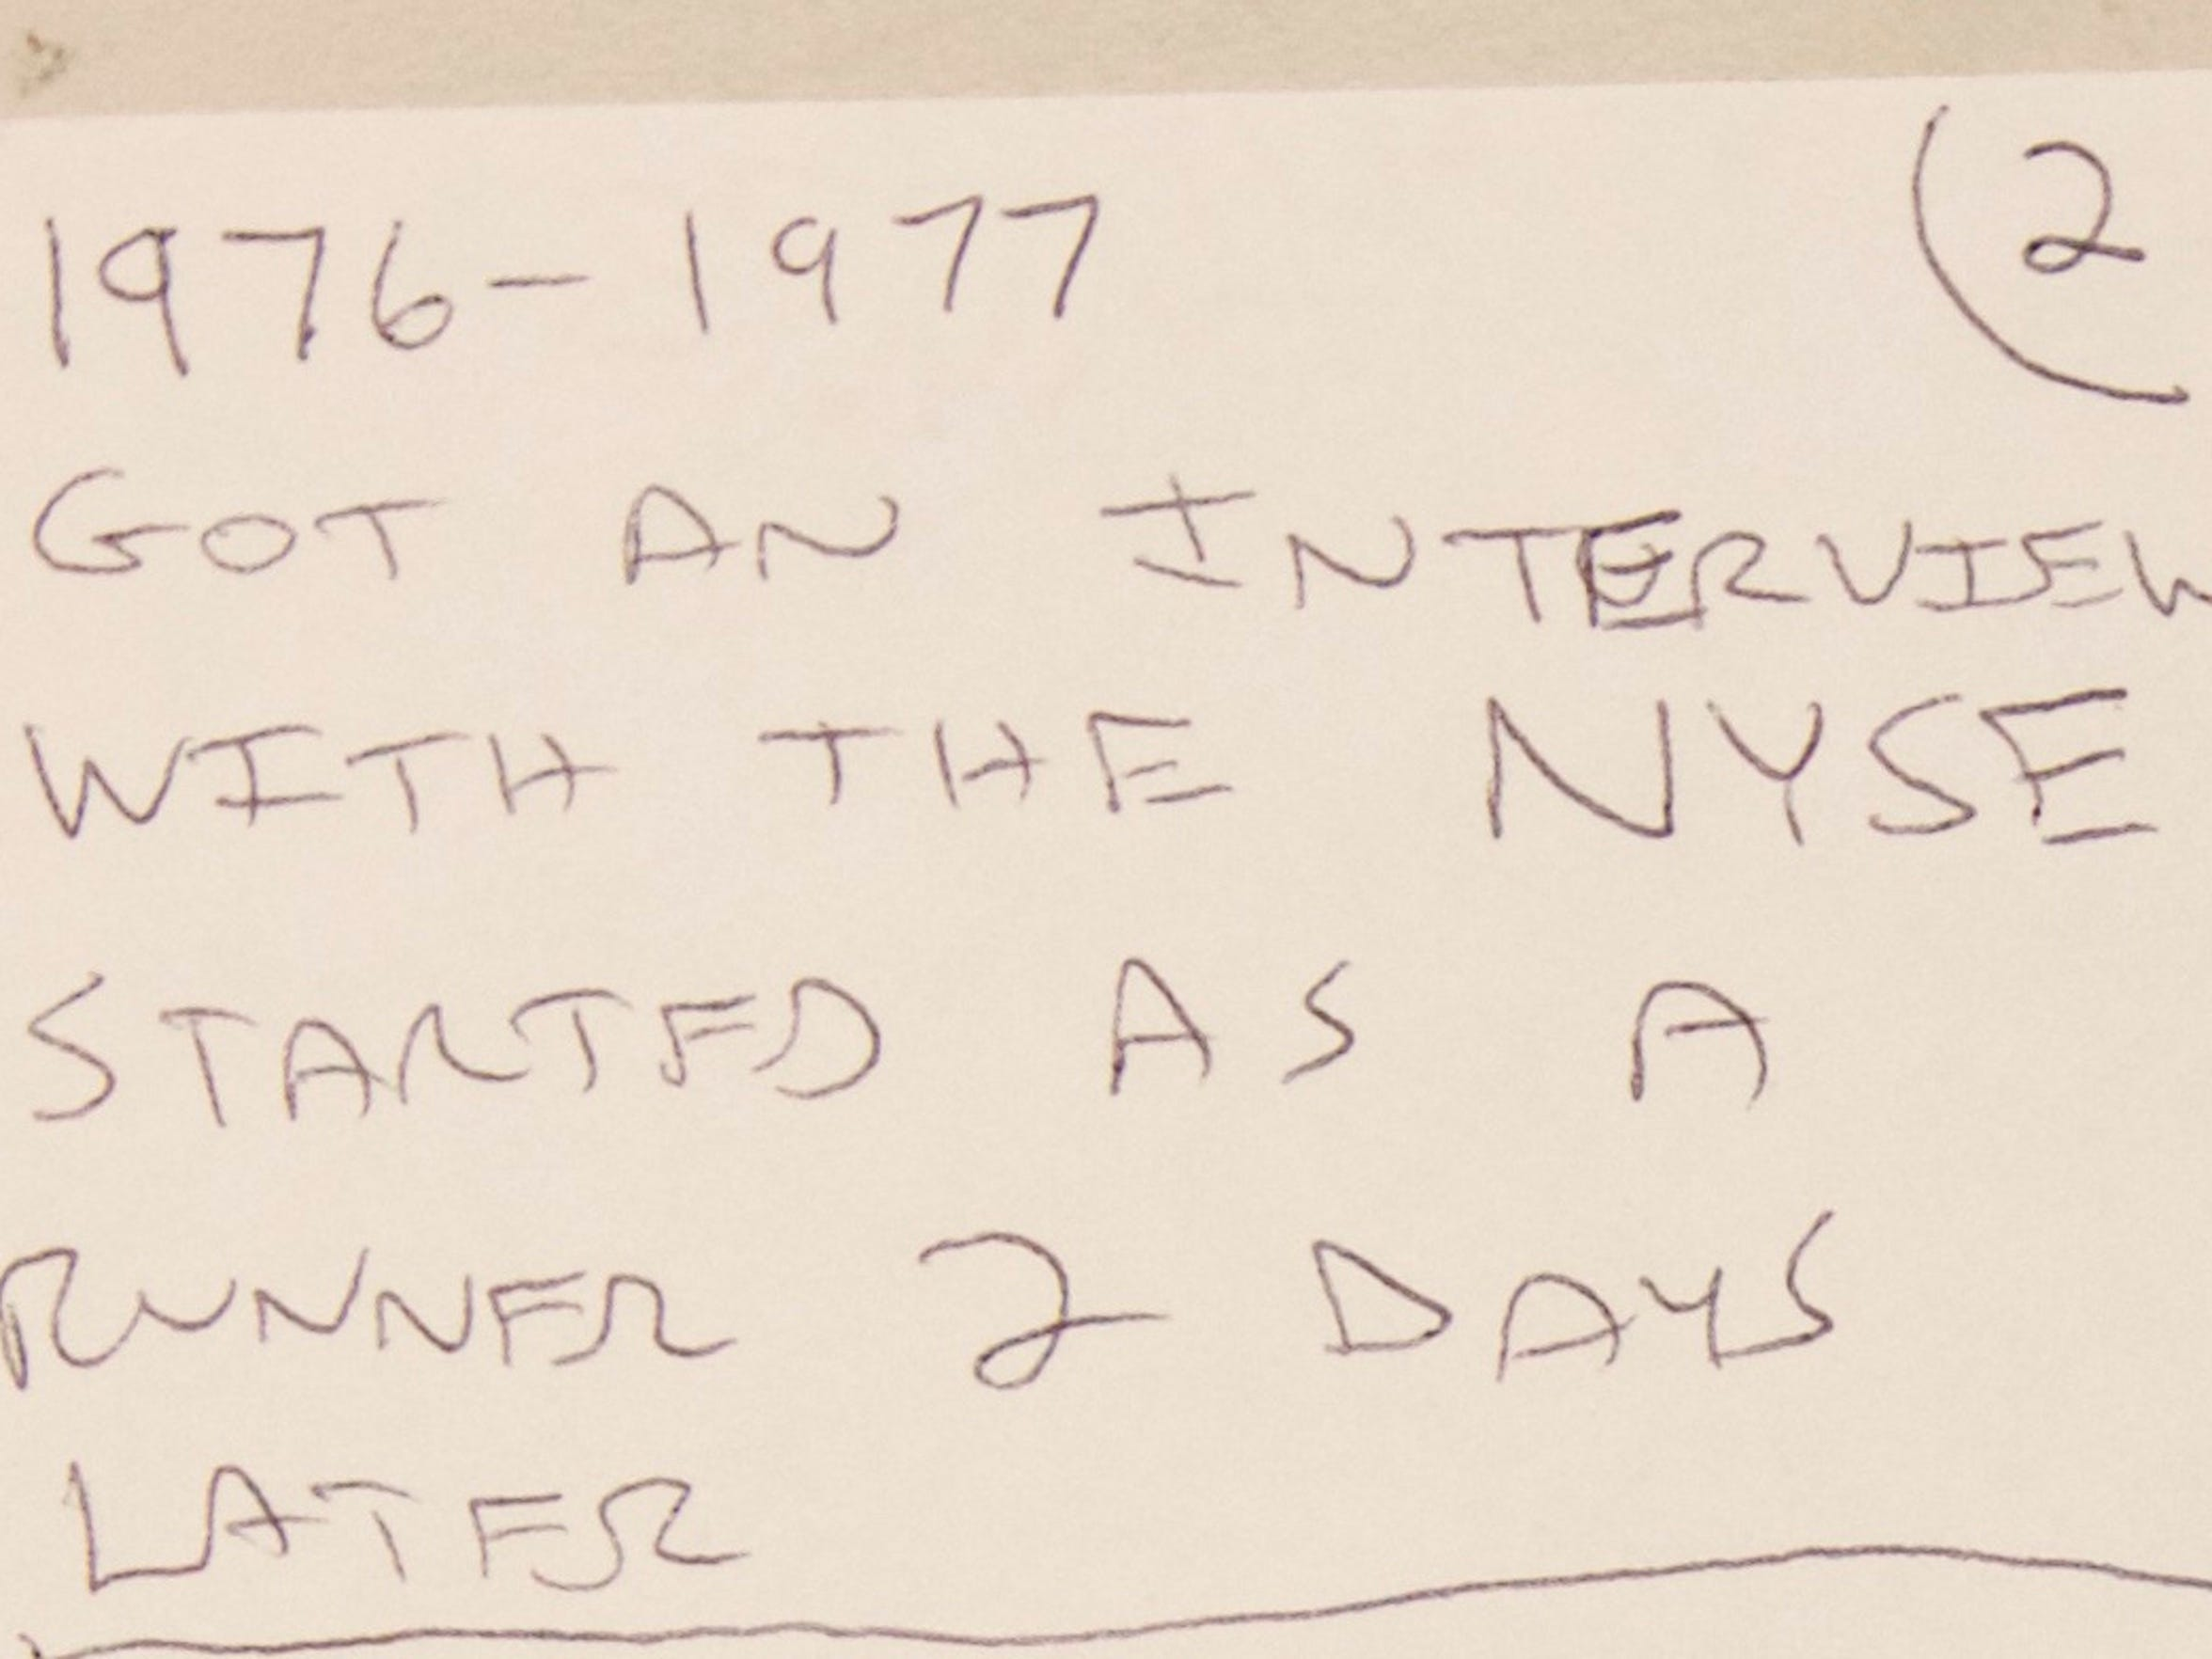 A letter from Spina shows when he got an interview